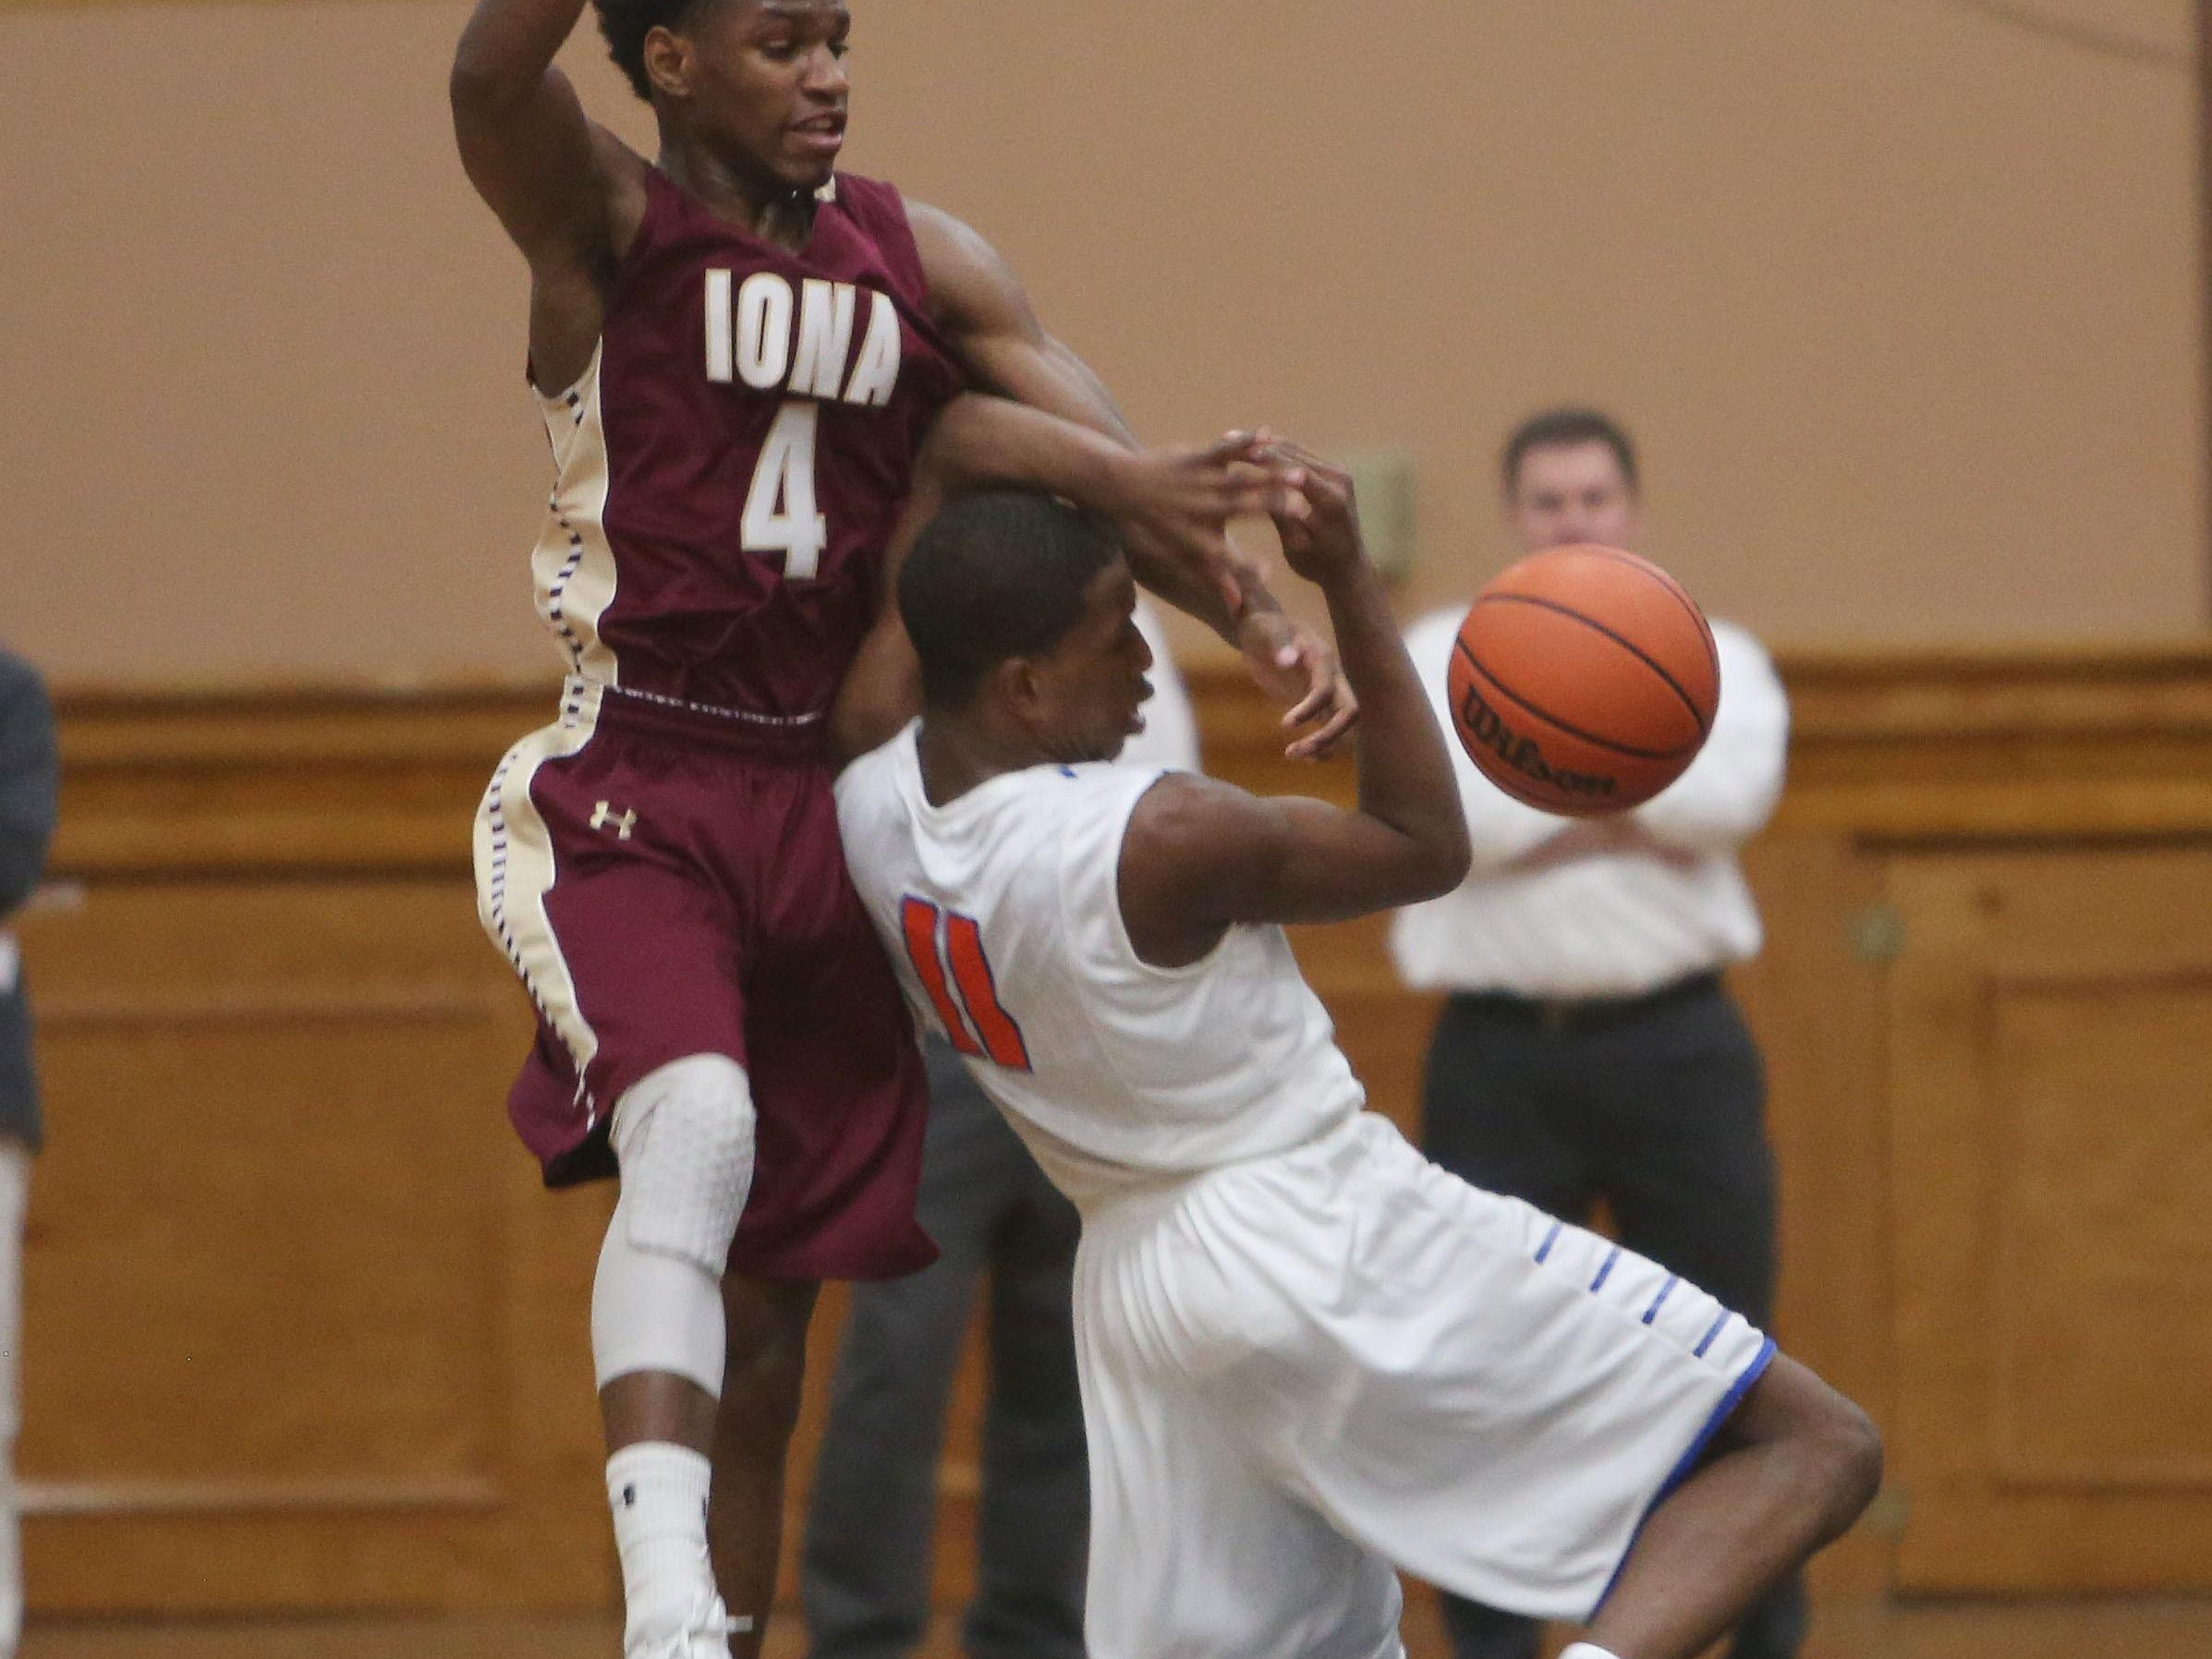 Iona's Gio Gabbidon (4) knocks the ball away from Saint Raymond's Isaiah Washington (11) during the CHSAA Archdiocesan tournament semifinal at Mount Saint Michael Academy in the Bronx Feb. 23, 2016. Saint Raymond won the game 55-47.